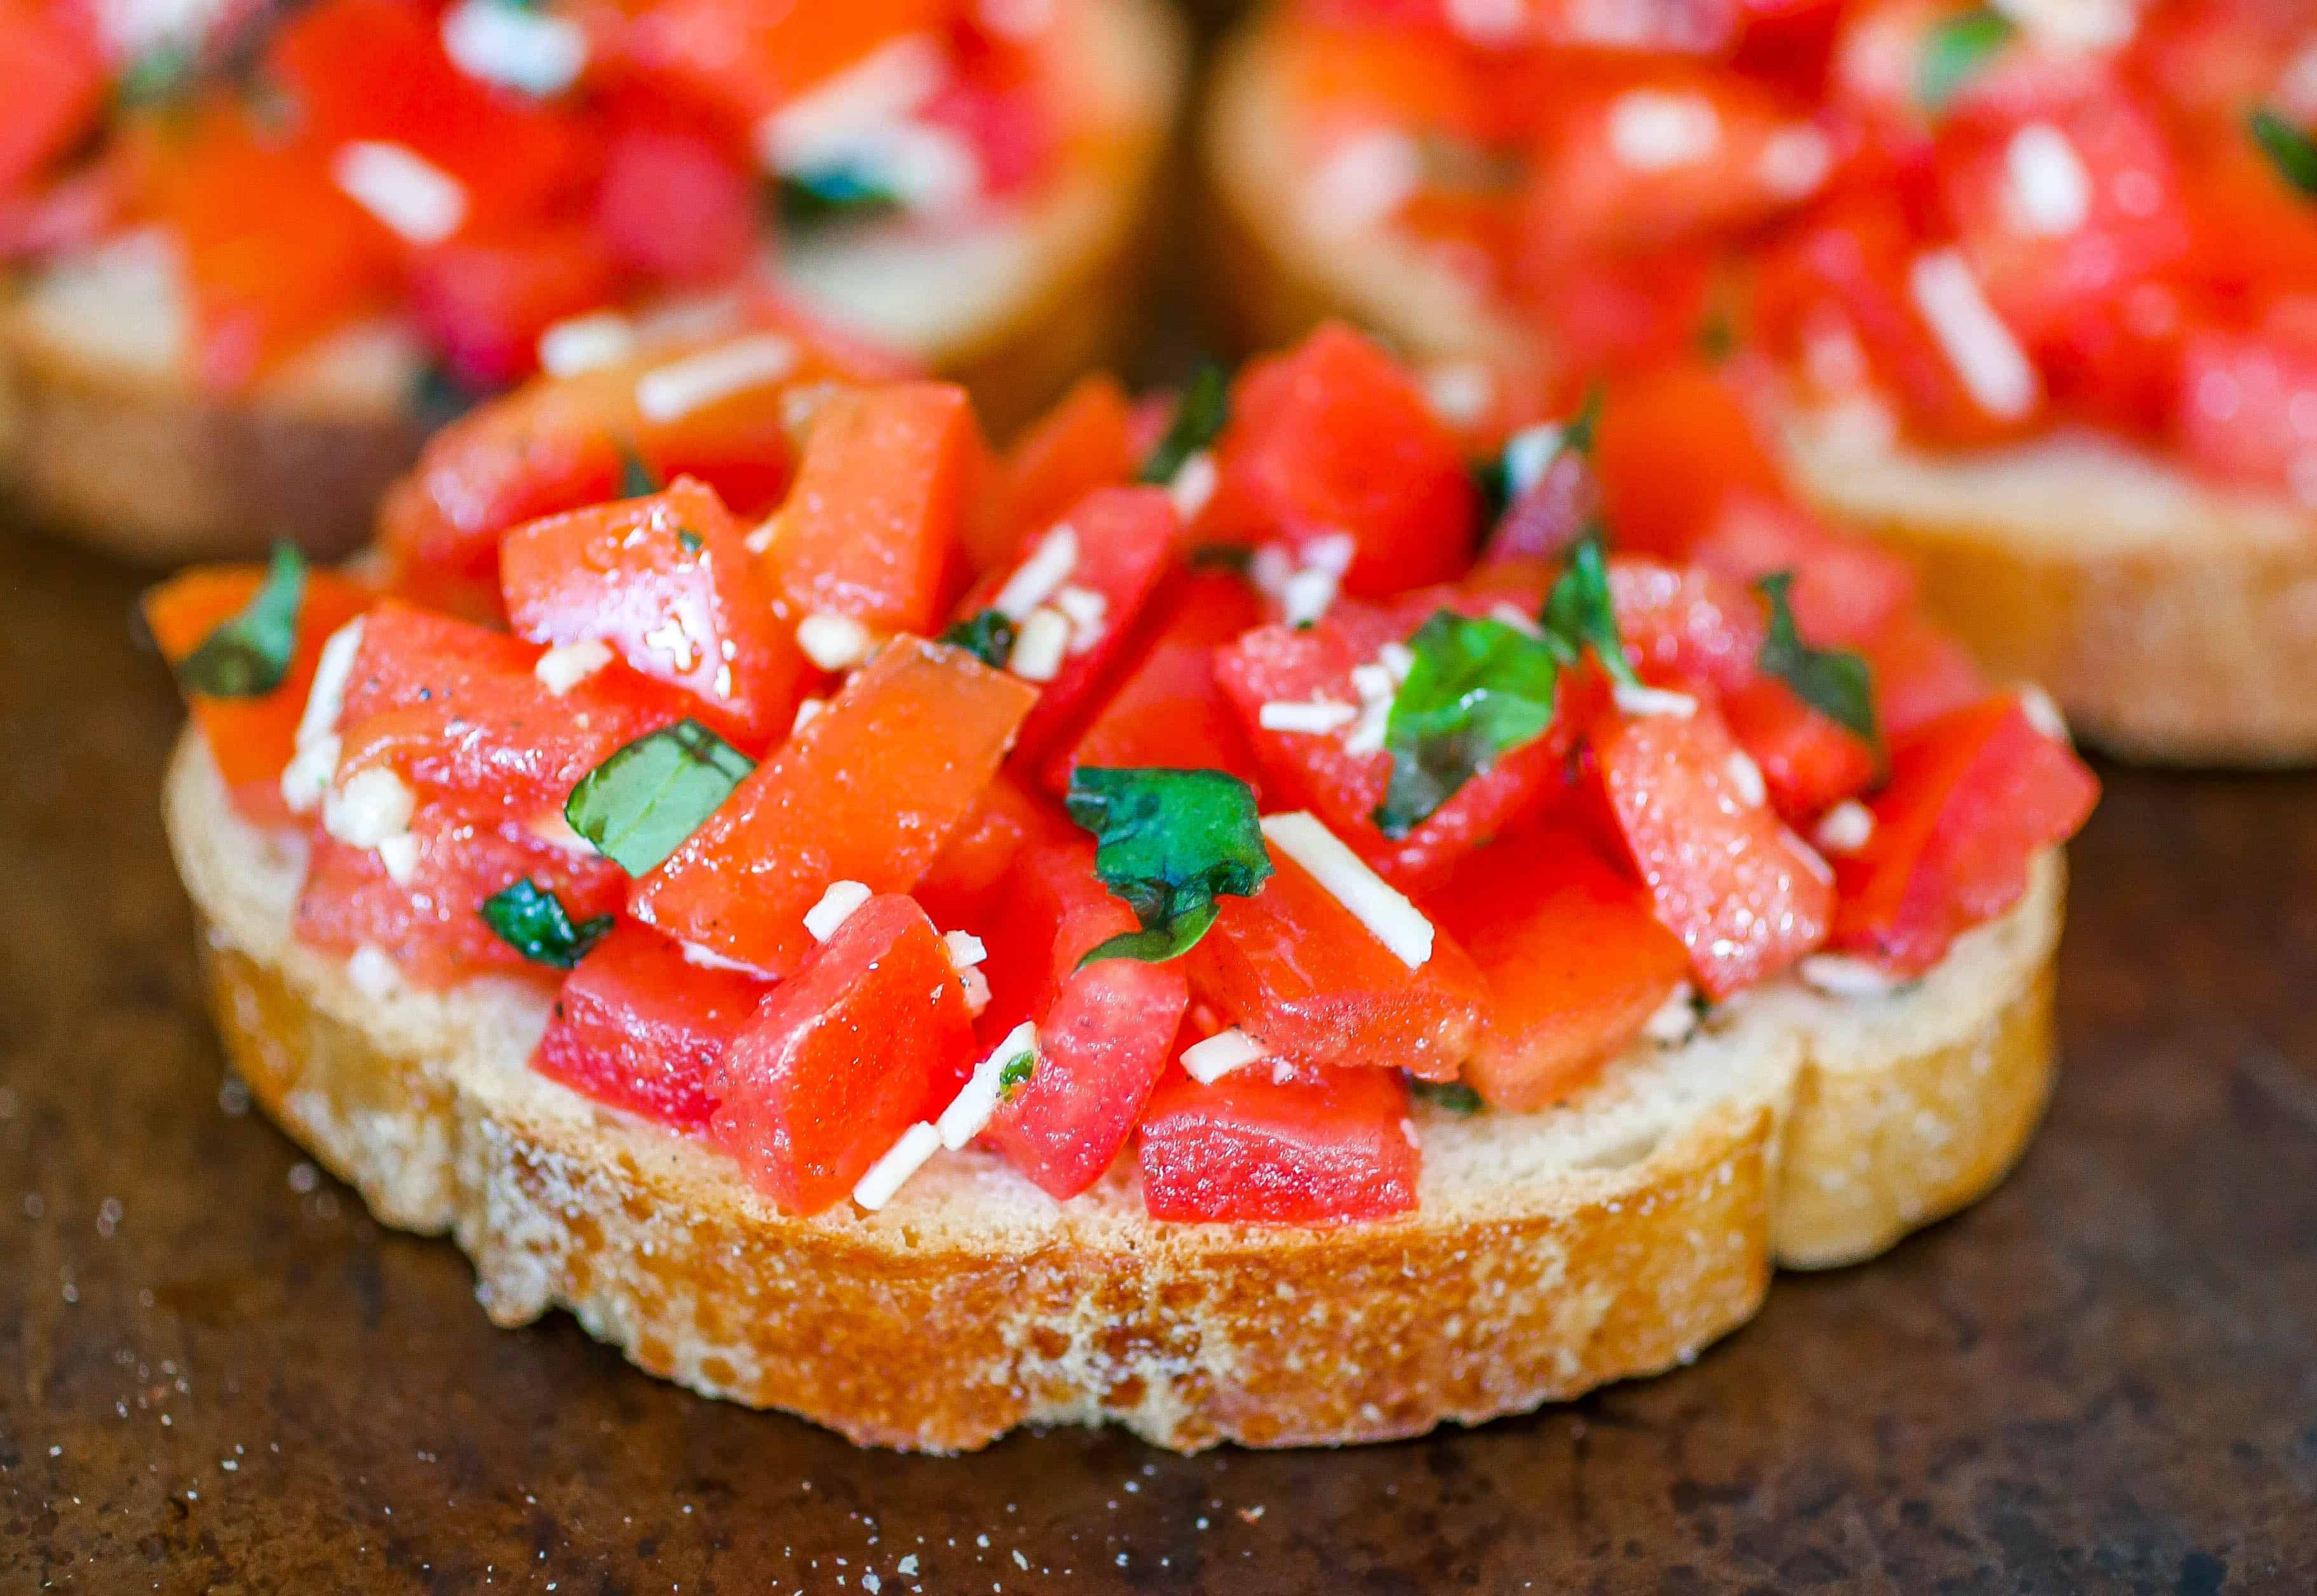 Homemade Bruschetta - A delicious, homemade bruschetta recipe that is perfect for parties, get-togethers or just a yummy snack!